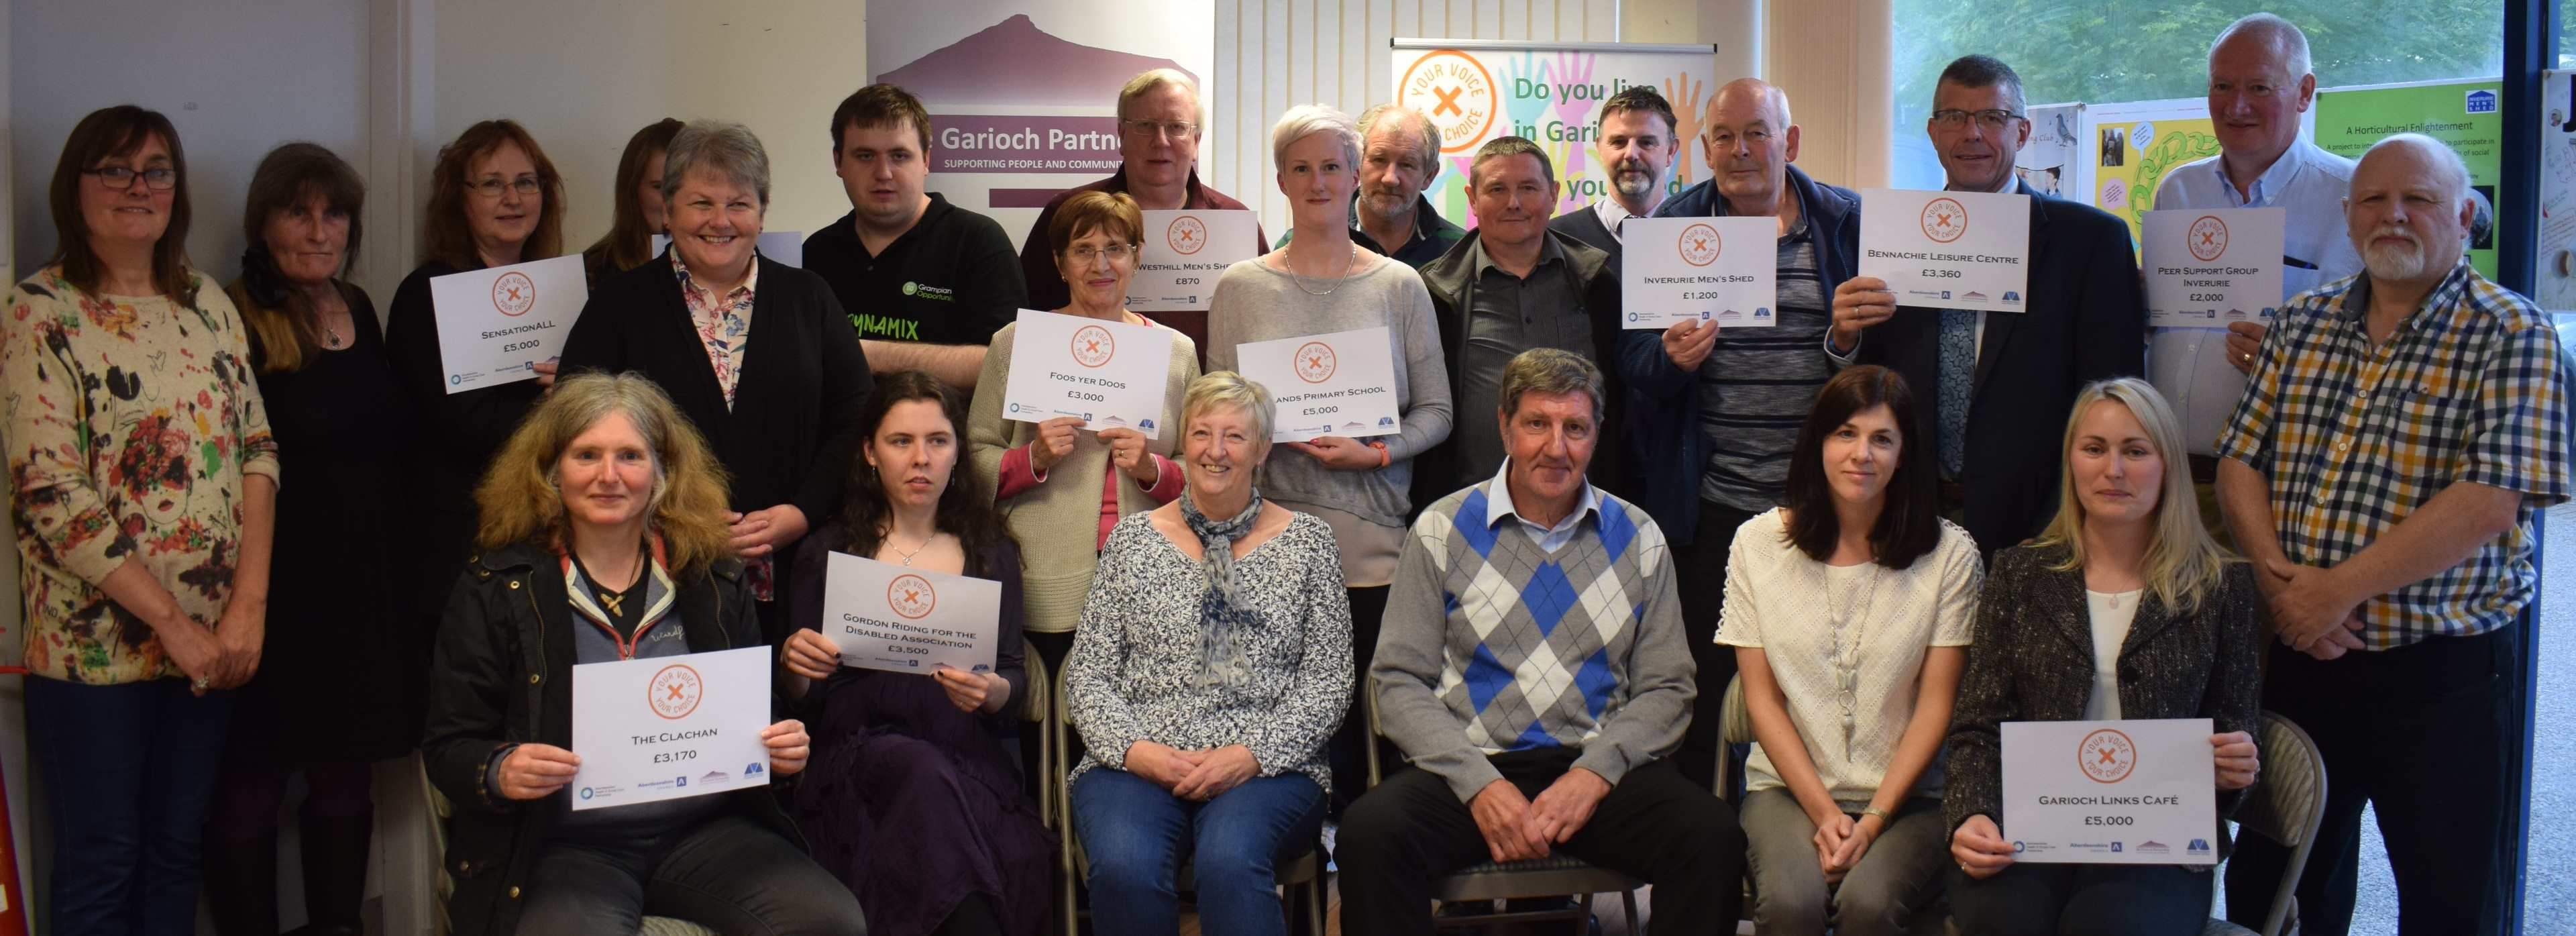 Members of the groups who received awards from the Your Voice Your Choice fund.